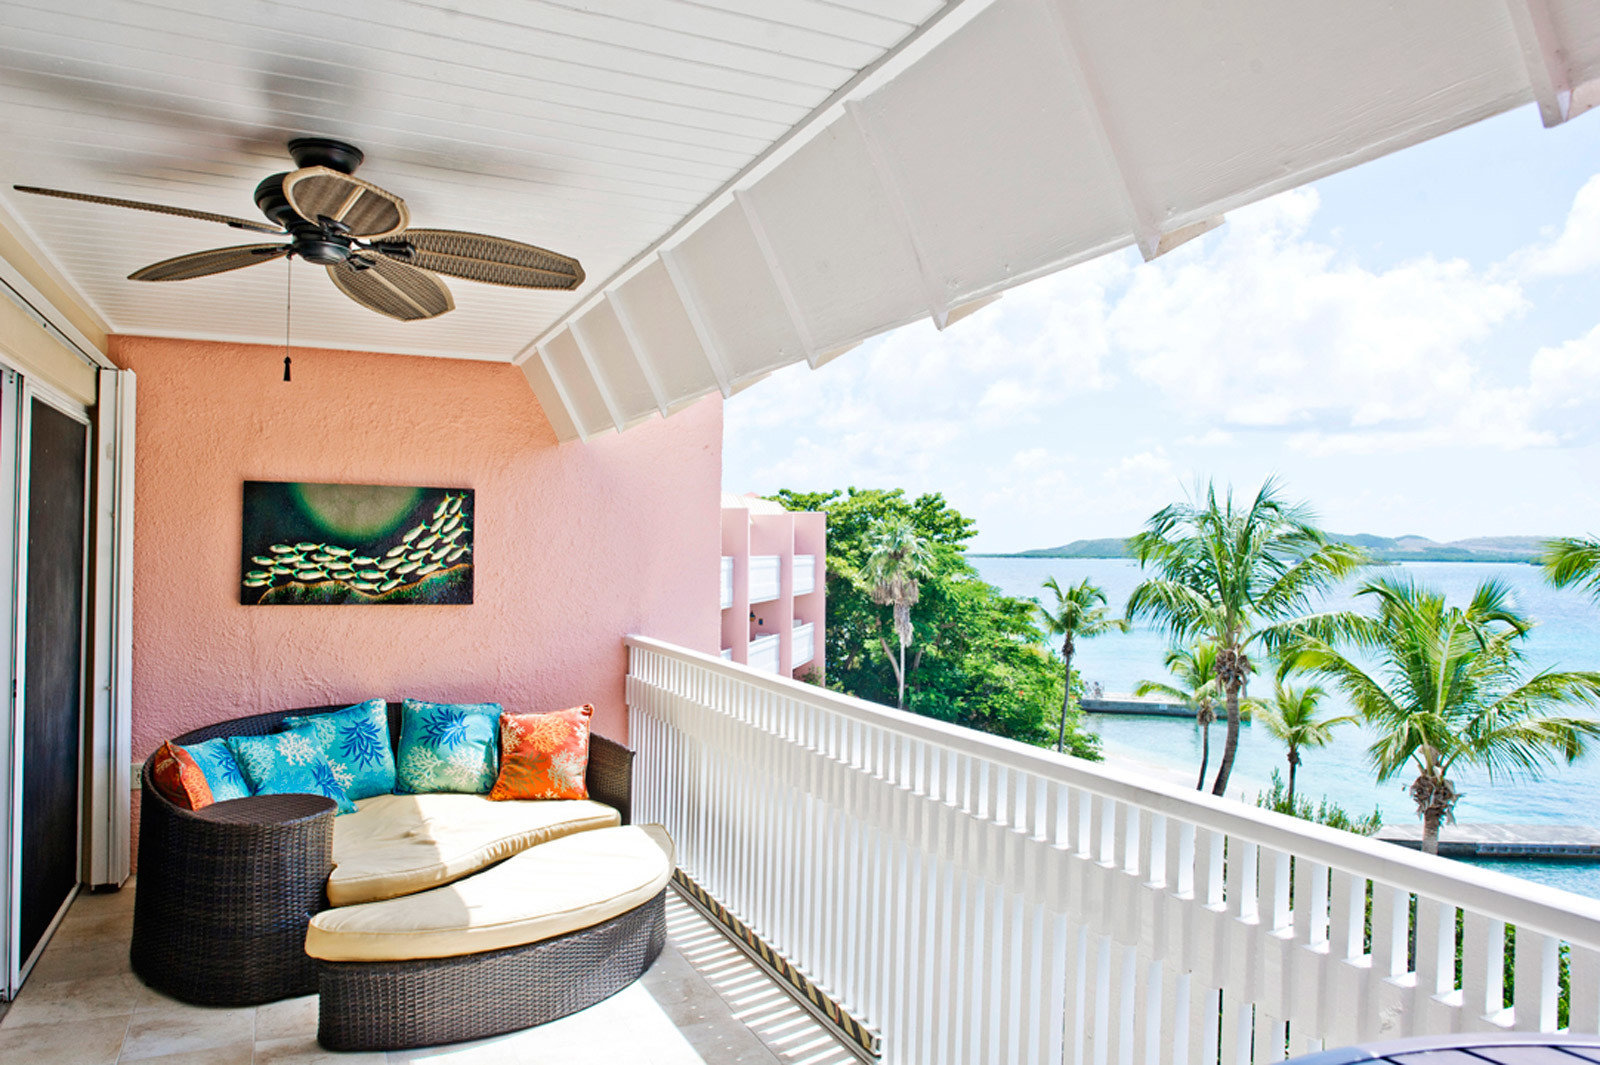 Trip Ideas property home Villa cottage condominium living room porch